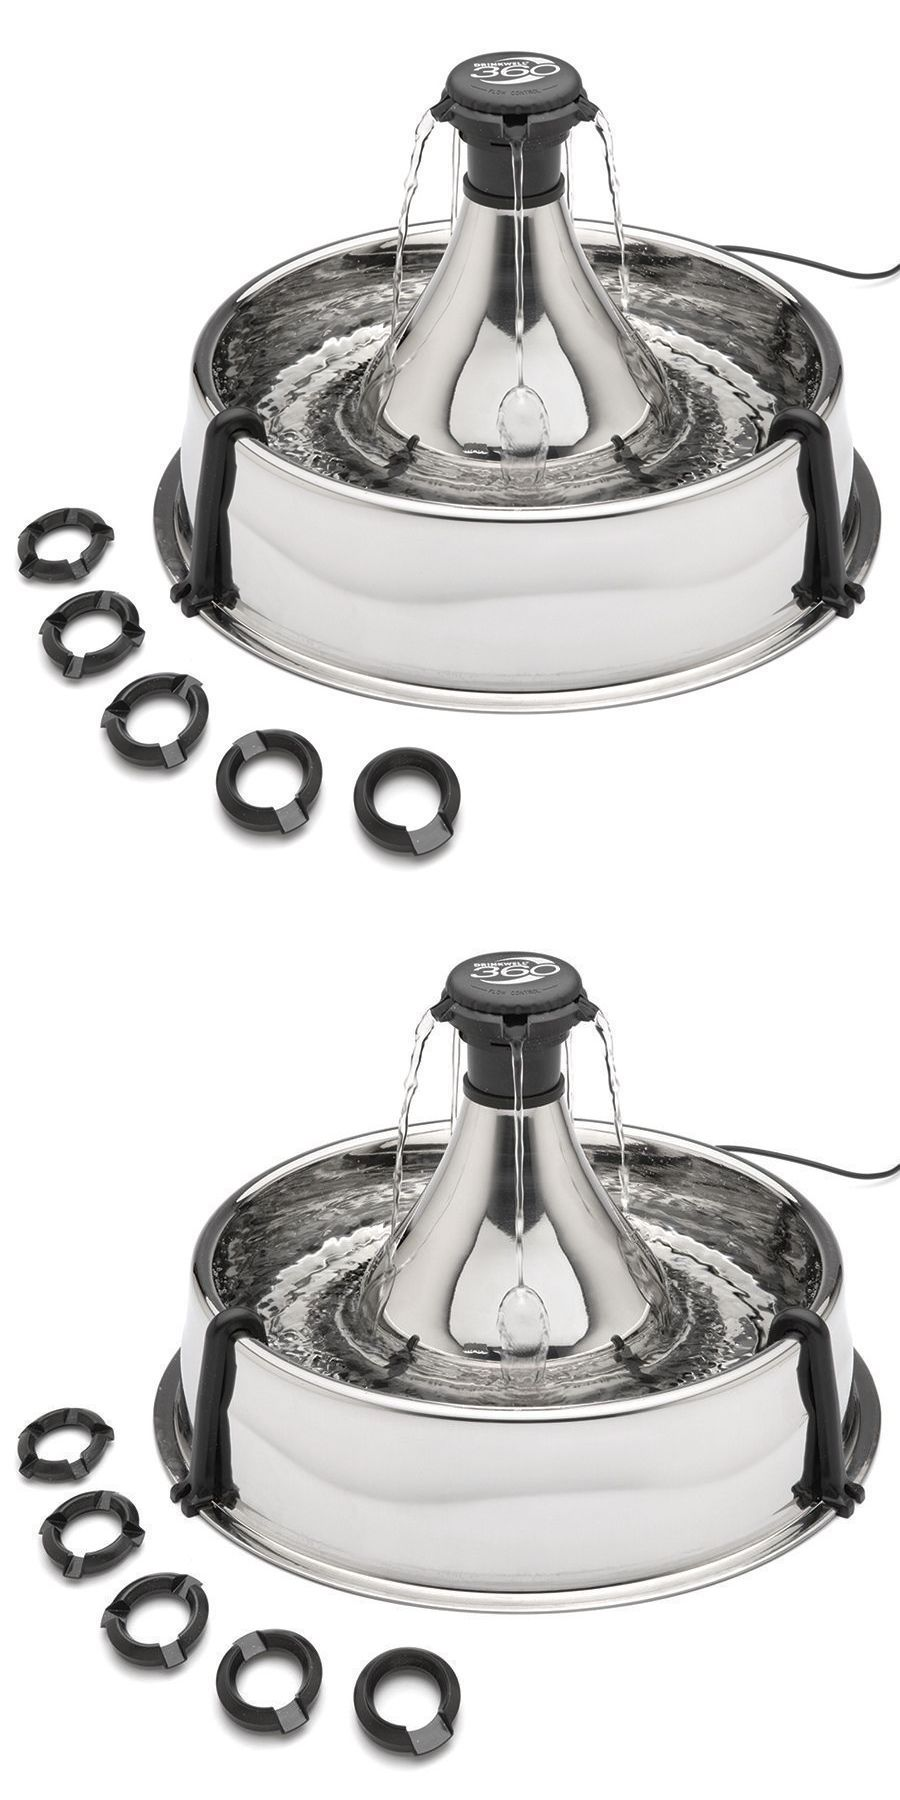 Drinkwell 360 Fountain Multi Pet Stainless Steel For Dogs Cats Pww00 13705 Multi Pet Dog Cat Pets